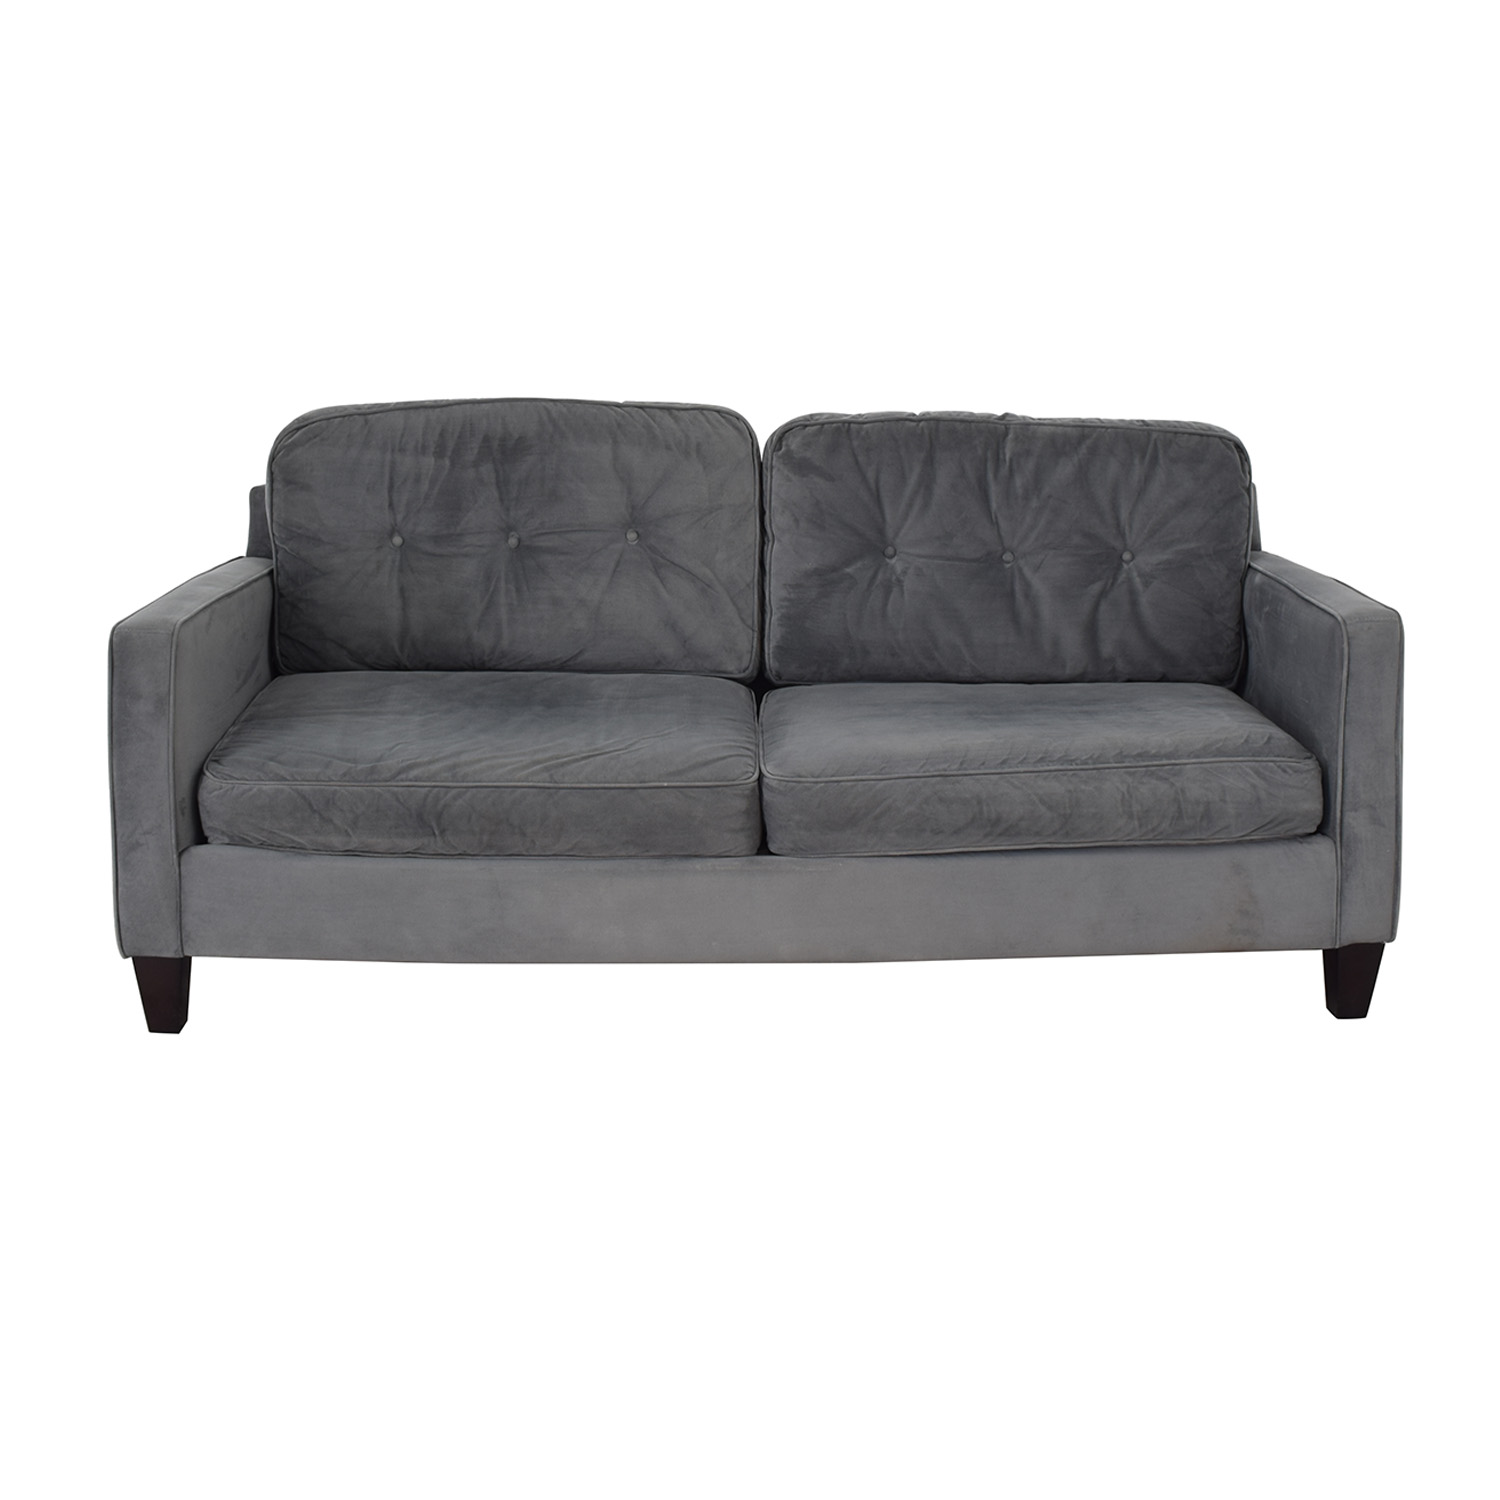 Raymour & Flanigan Raymour & Flanigan Granite Grey Tufted Two-Cushion Sofa price